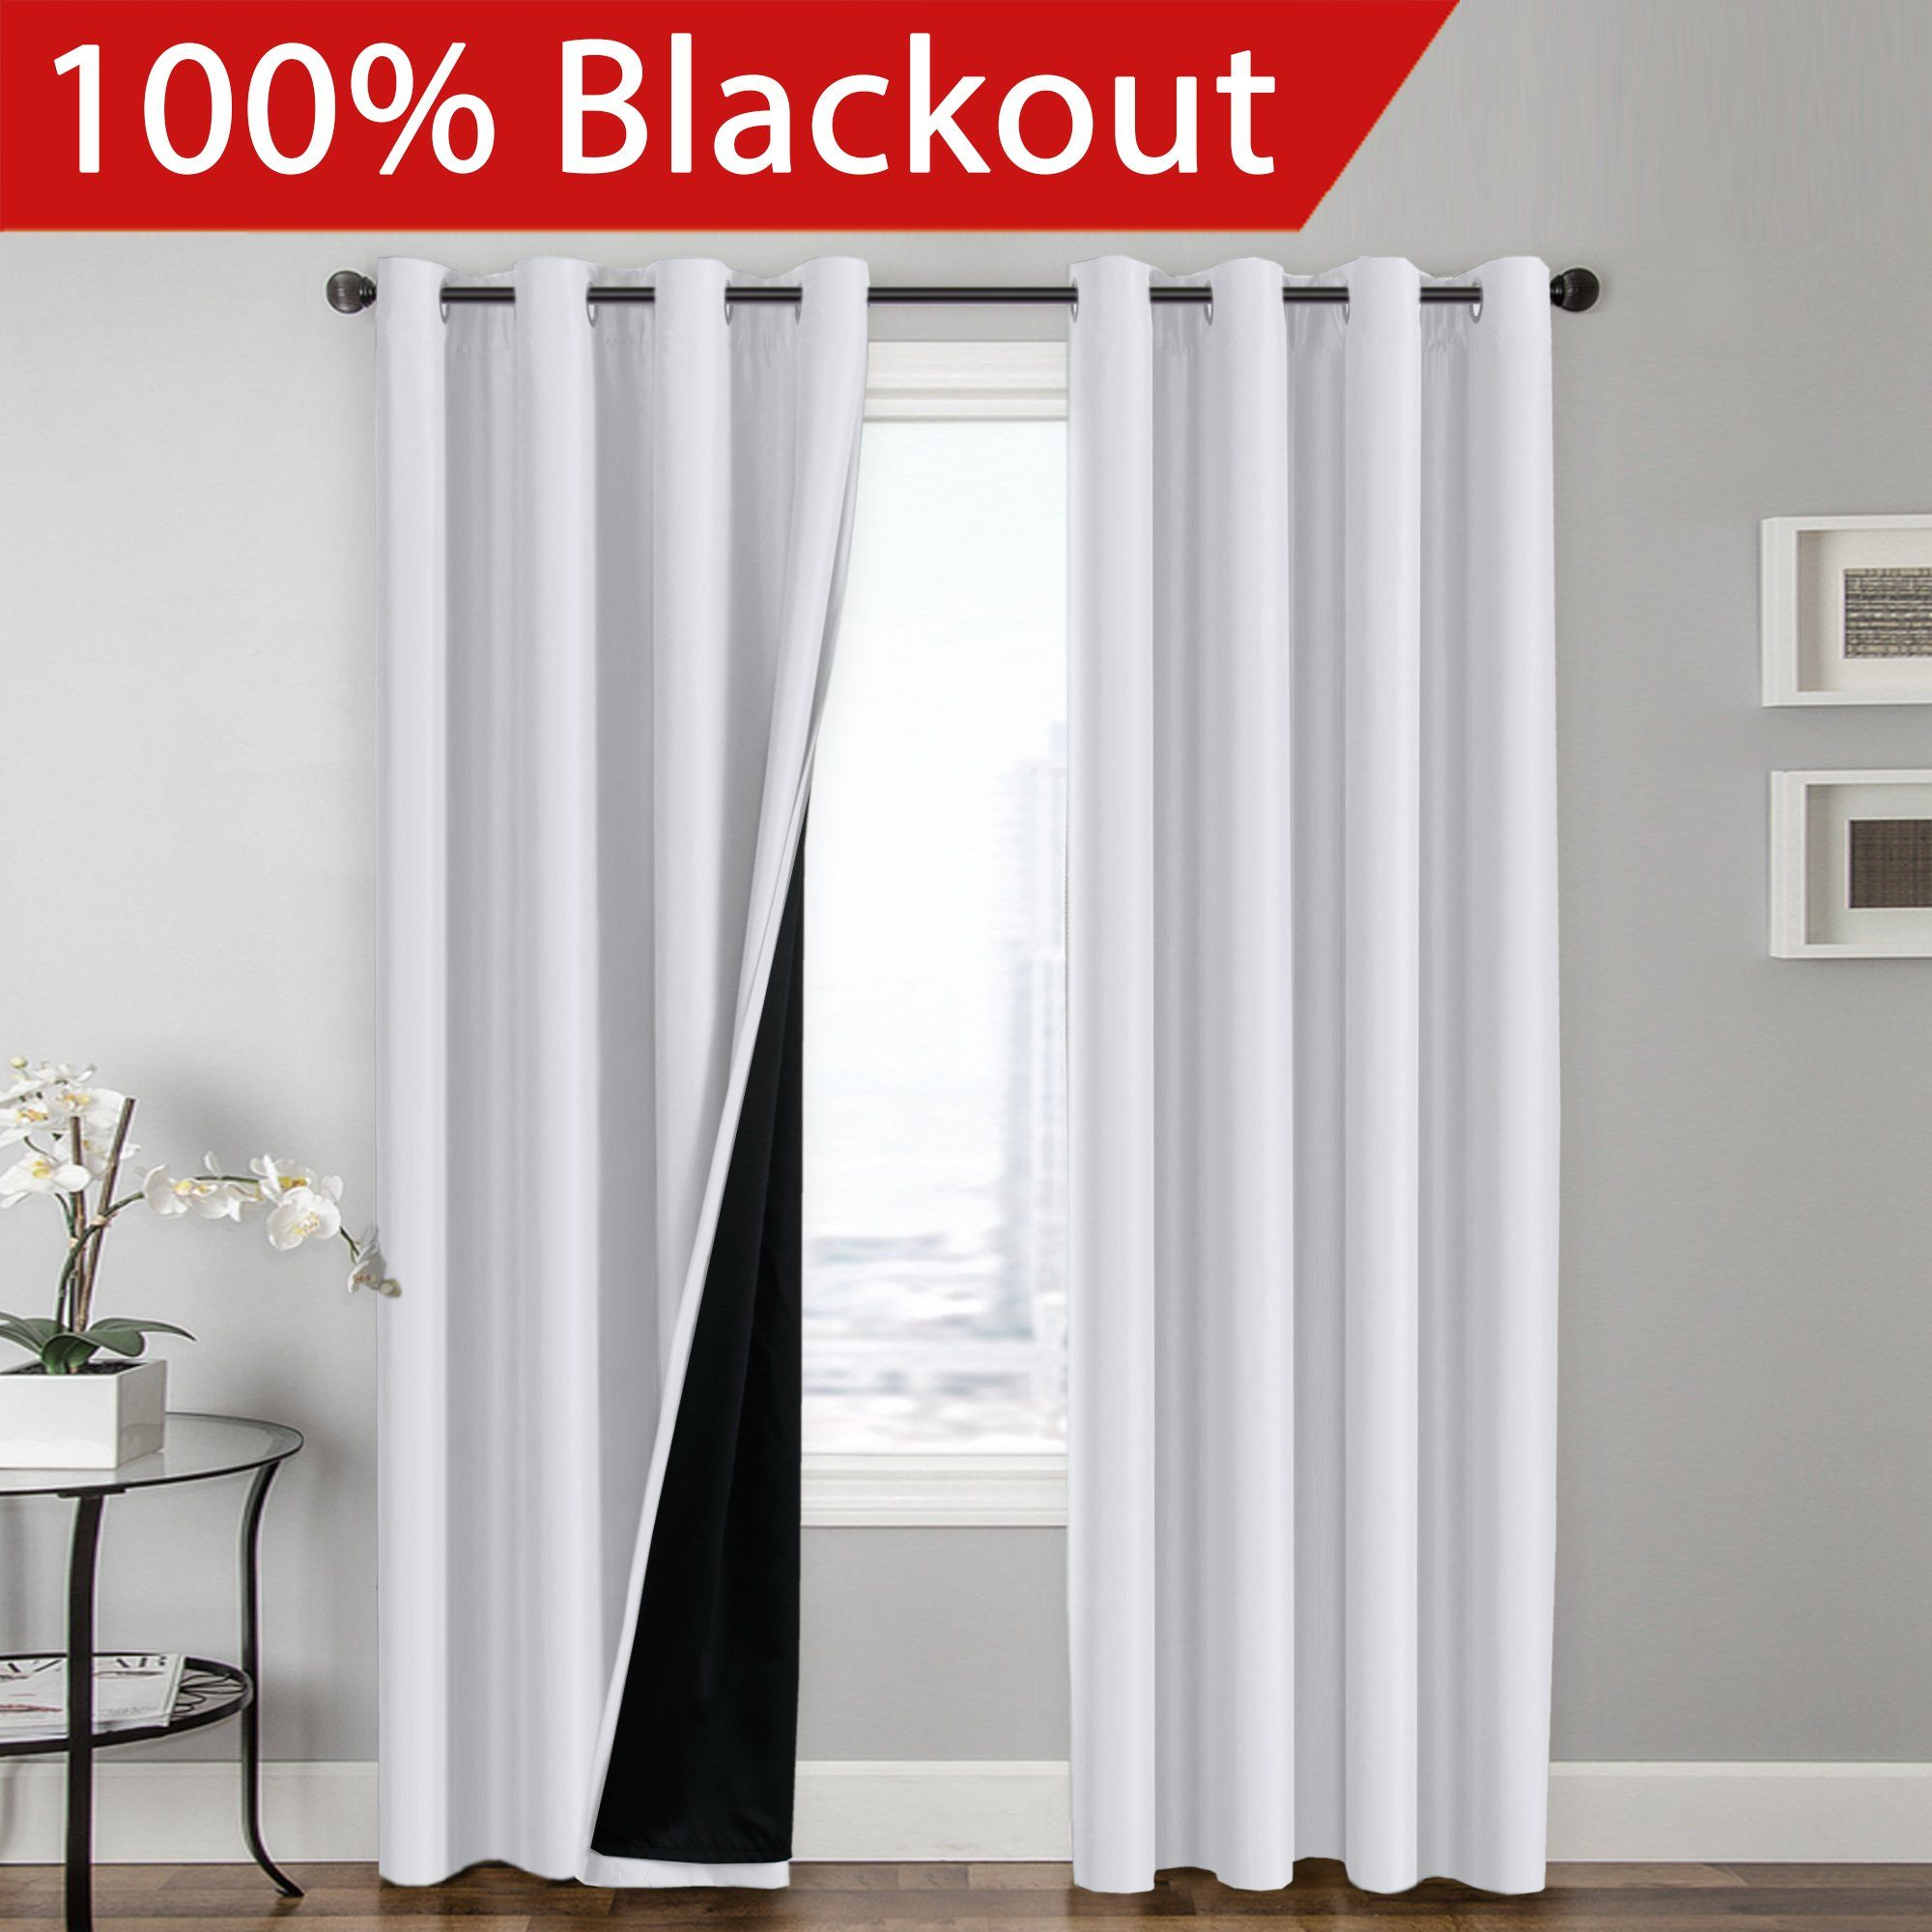 some suffice will use blackout curtains heavily most be short is lights pop a term they cases black and nursery blinds children lined effective in portable that what white to s xl you need solution but easy out